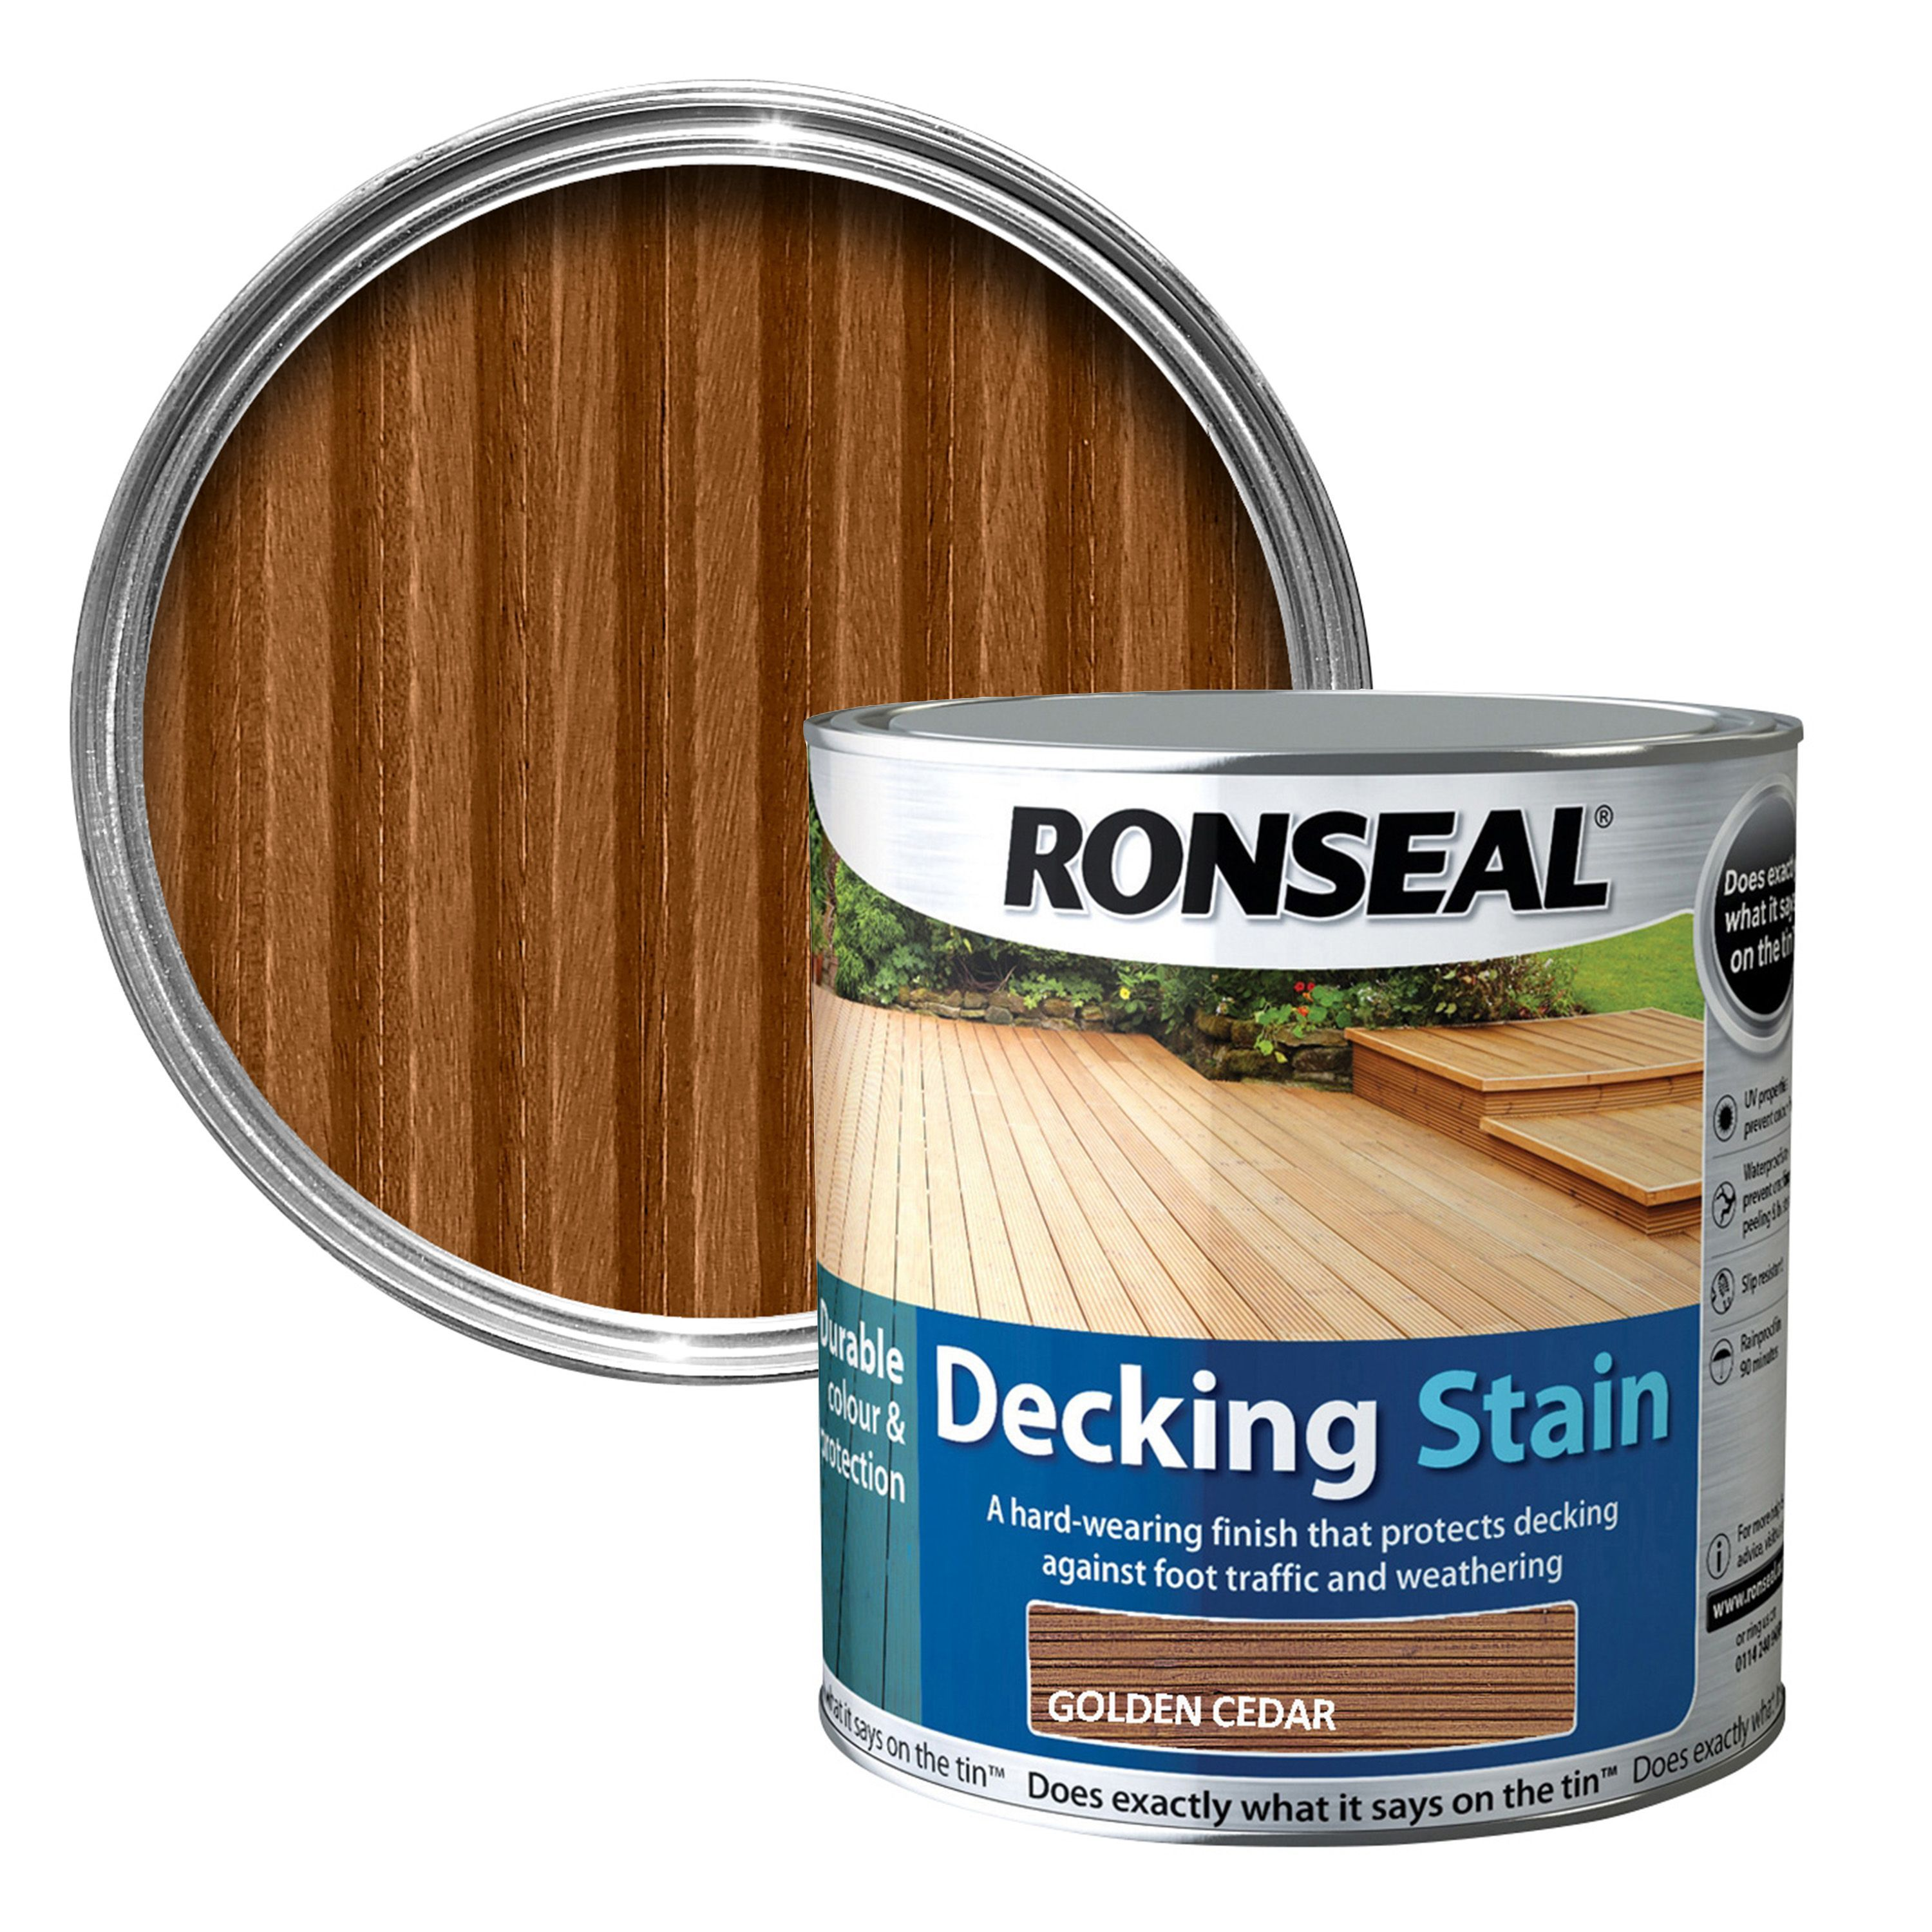 Ronseal decking stain country oak non woven geotextile fabric